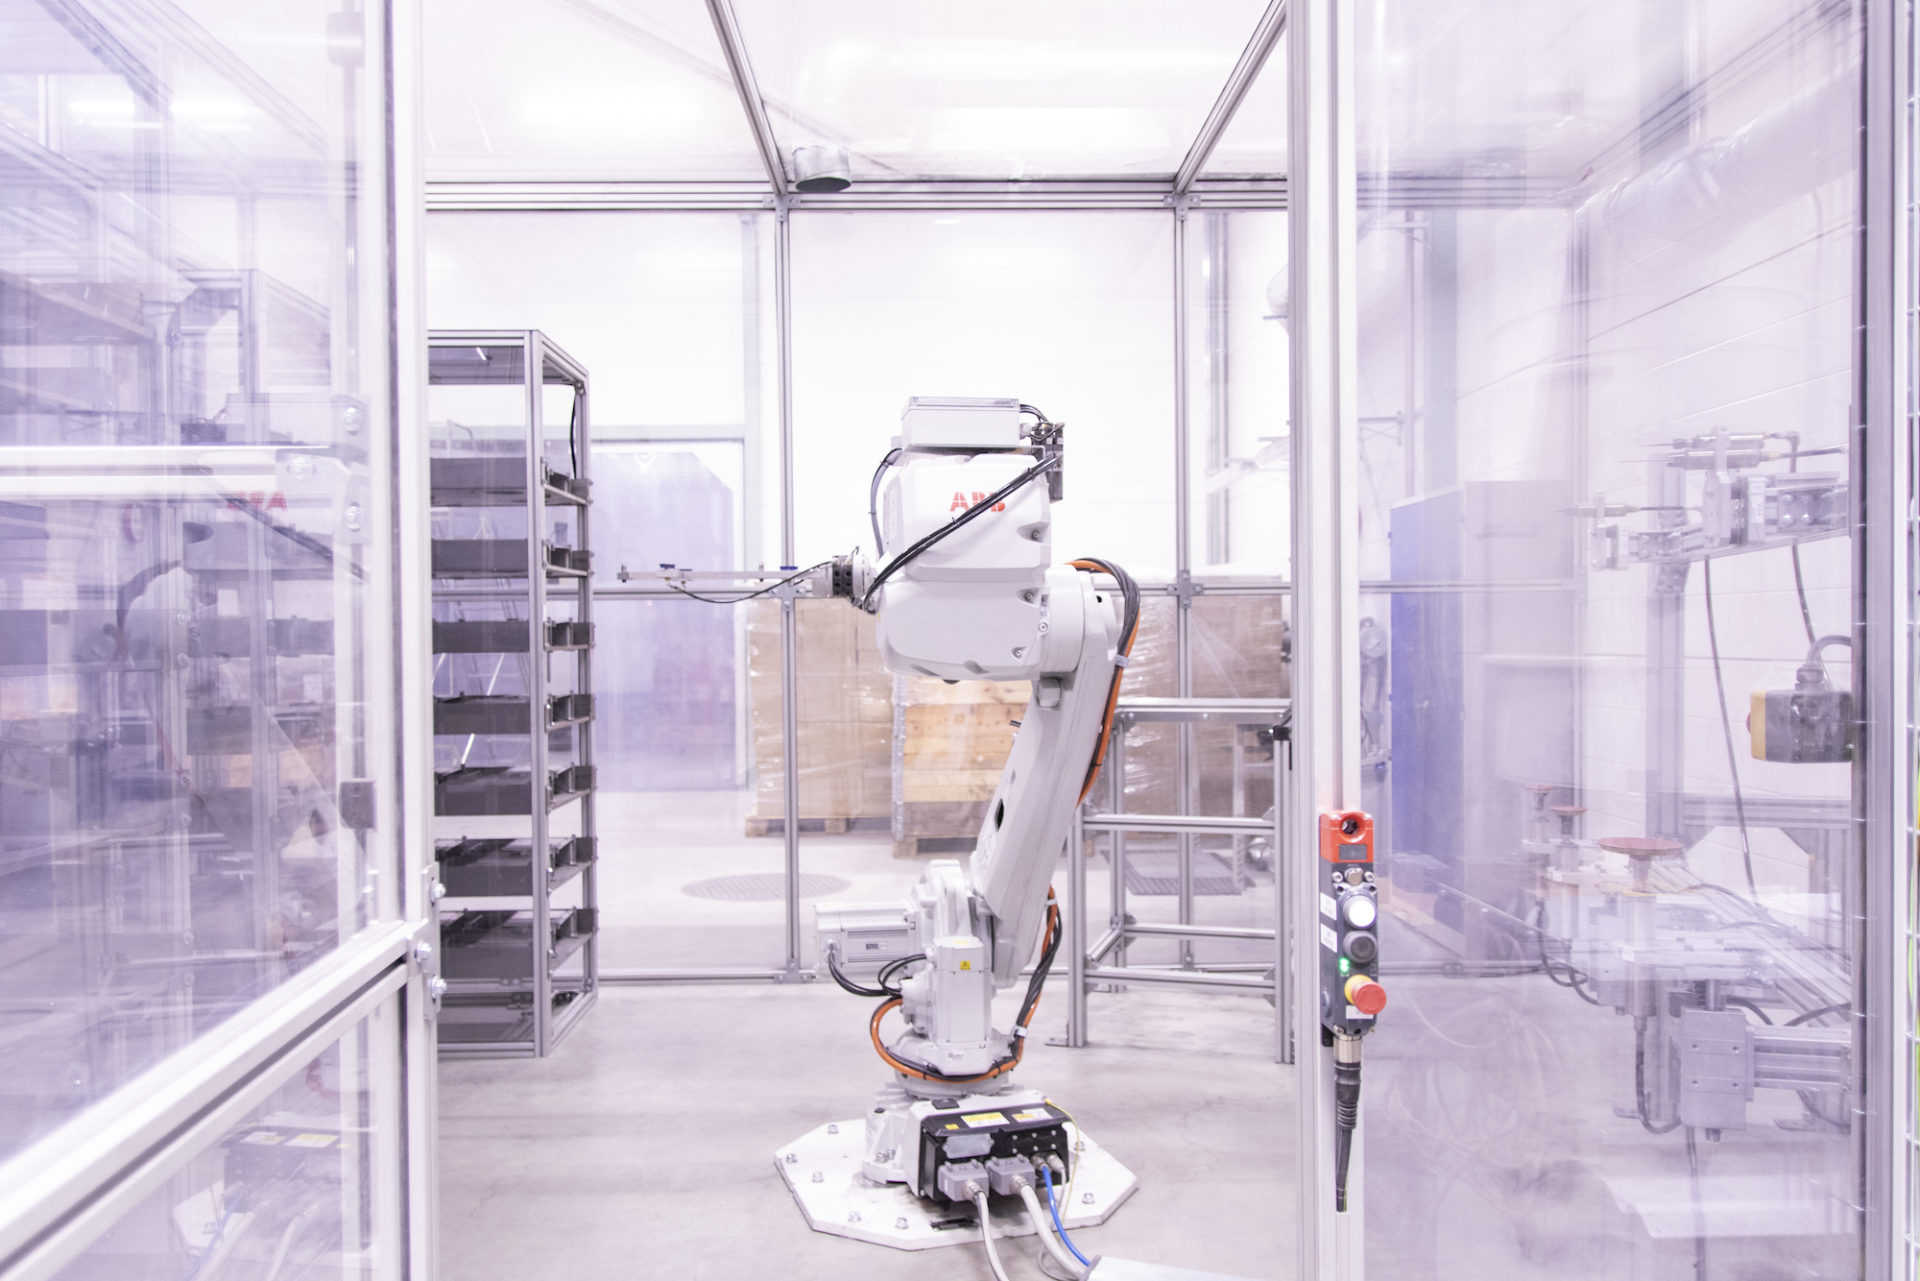 An automatic grinding robot on standby